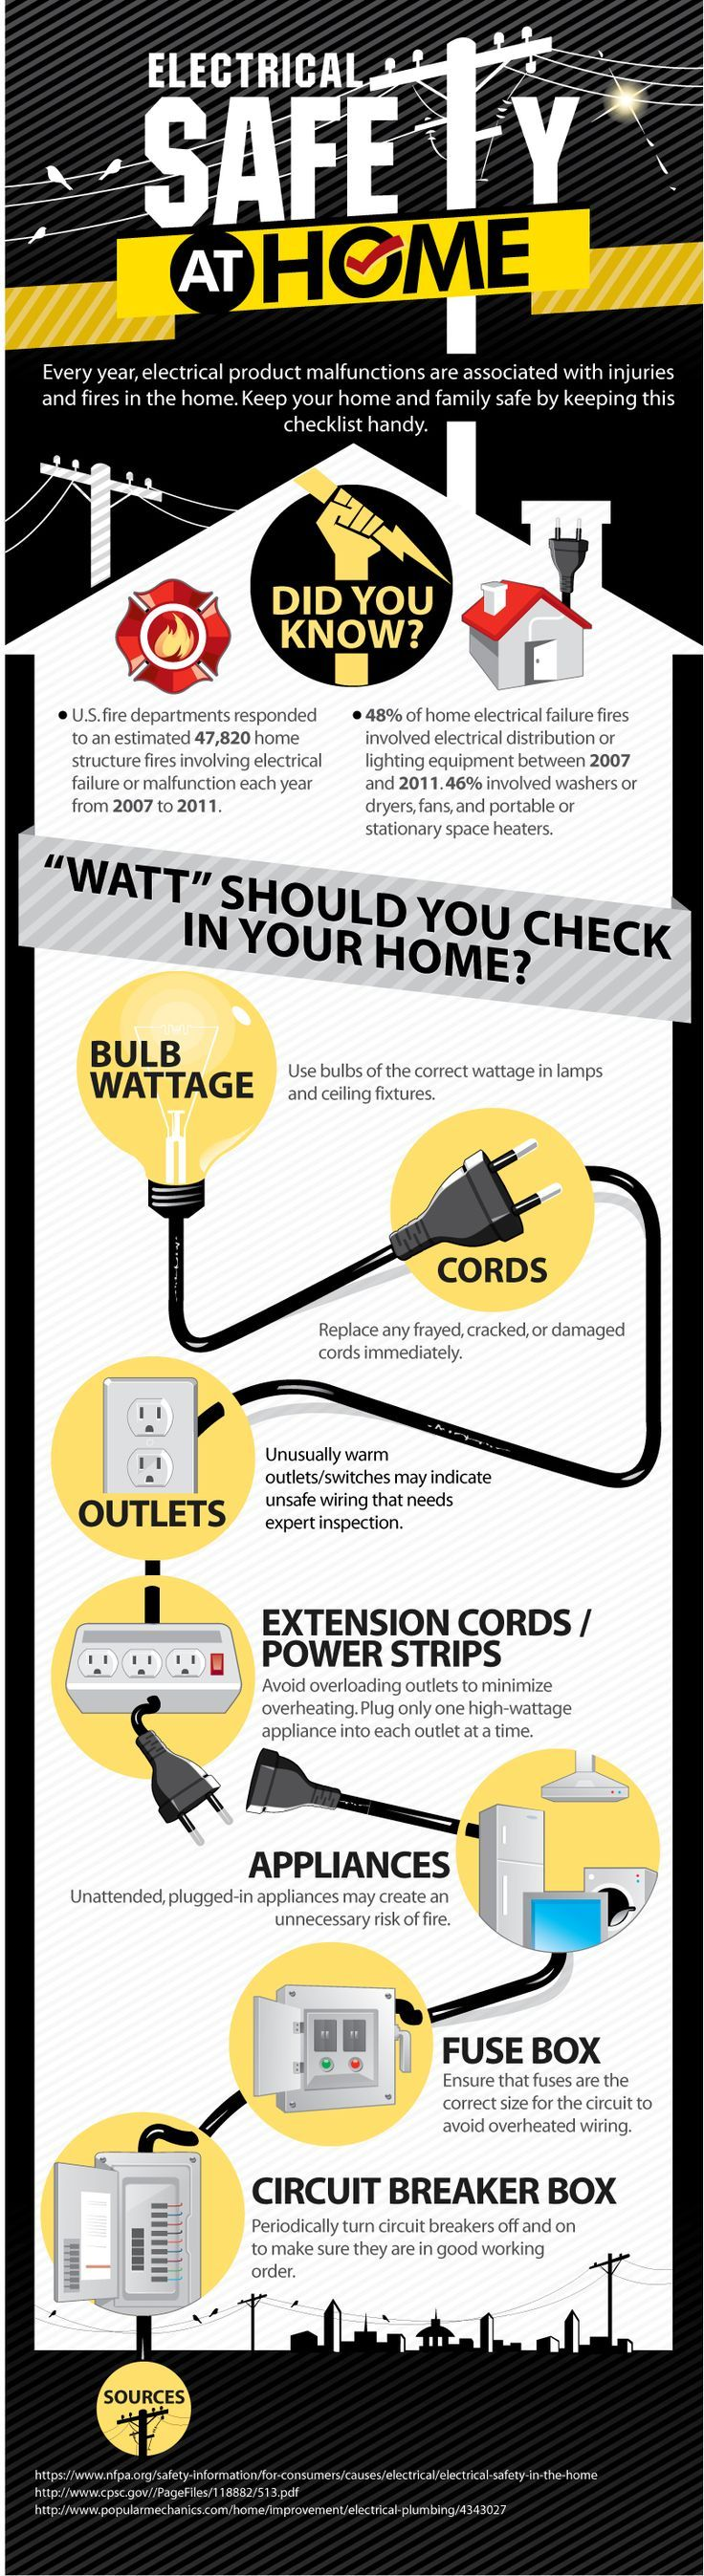 firesafety fireprevention electricsafety infographics a handy infographic for electrical safety at home